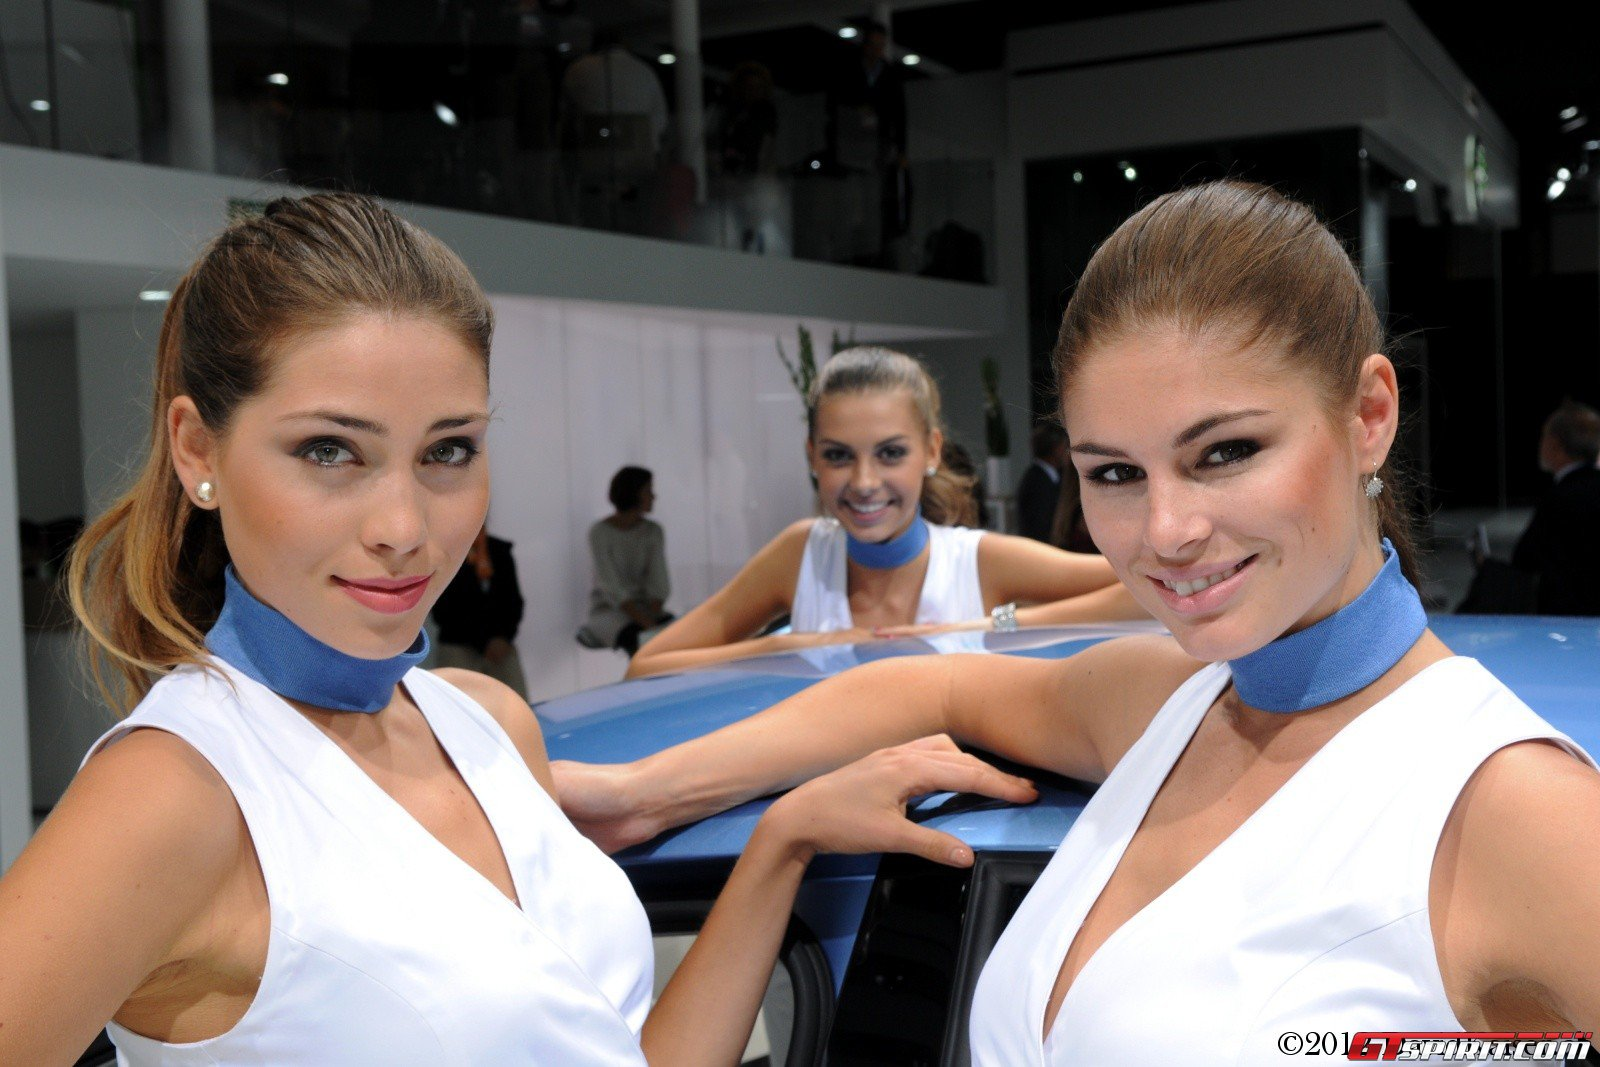 Paris Motor Show 2012 Girls by David Kaiser Photography - Part 2 Photo 17